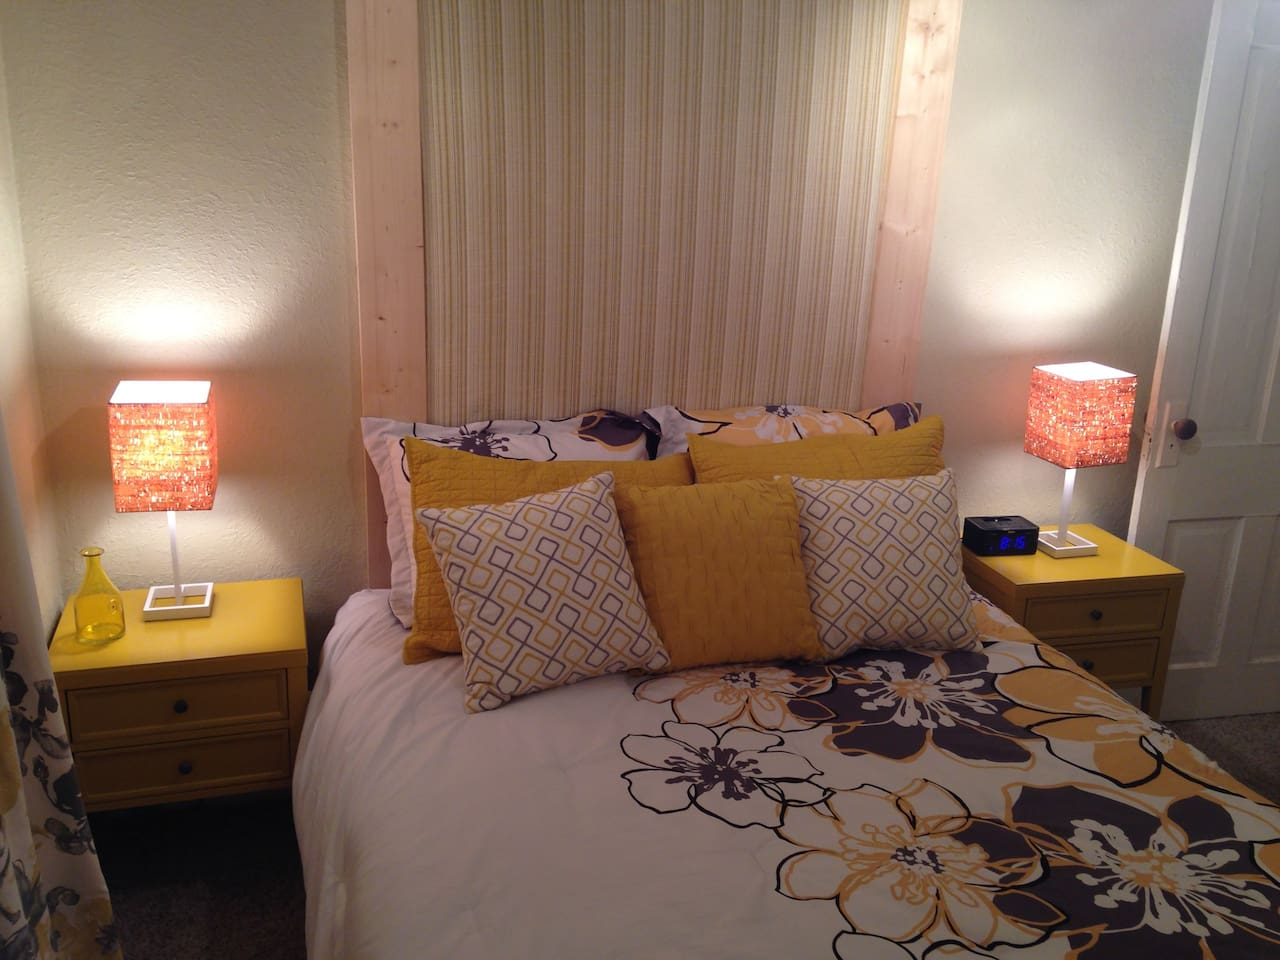 Luxe plush bedding with custom headboard and coordinating pillows.